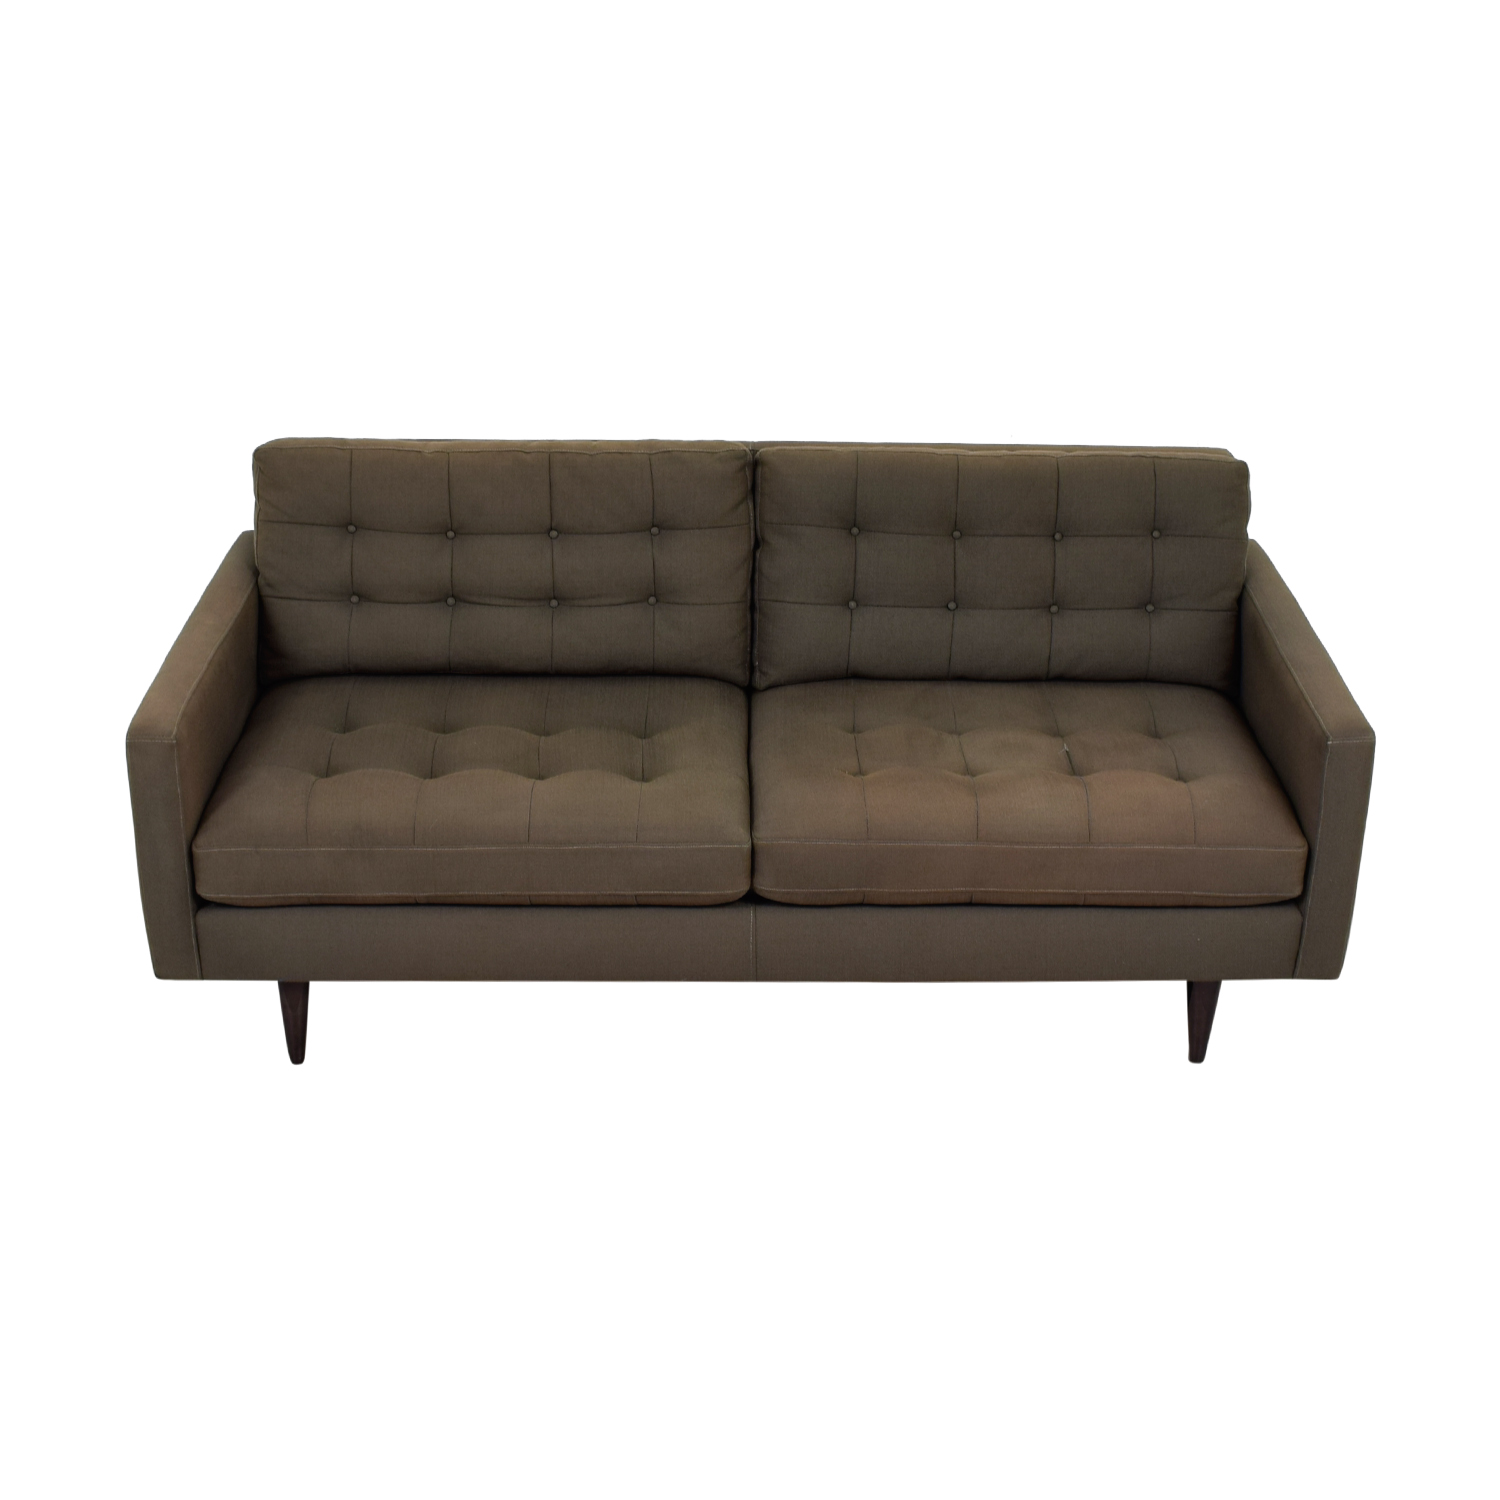 Crate & Barrel Crate & Barrel Petrie Grey Tufted Two-Cushion Sofa second hand